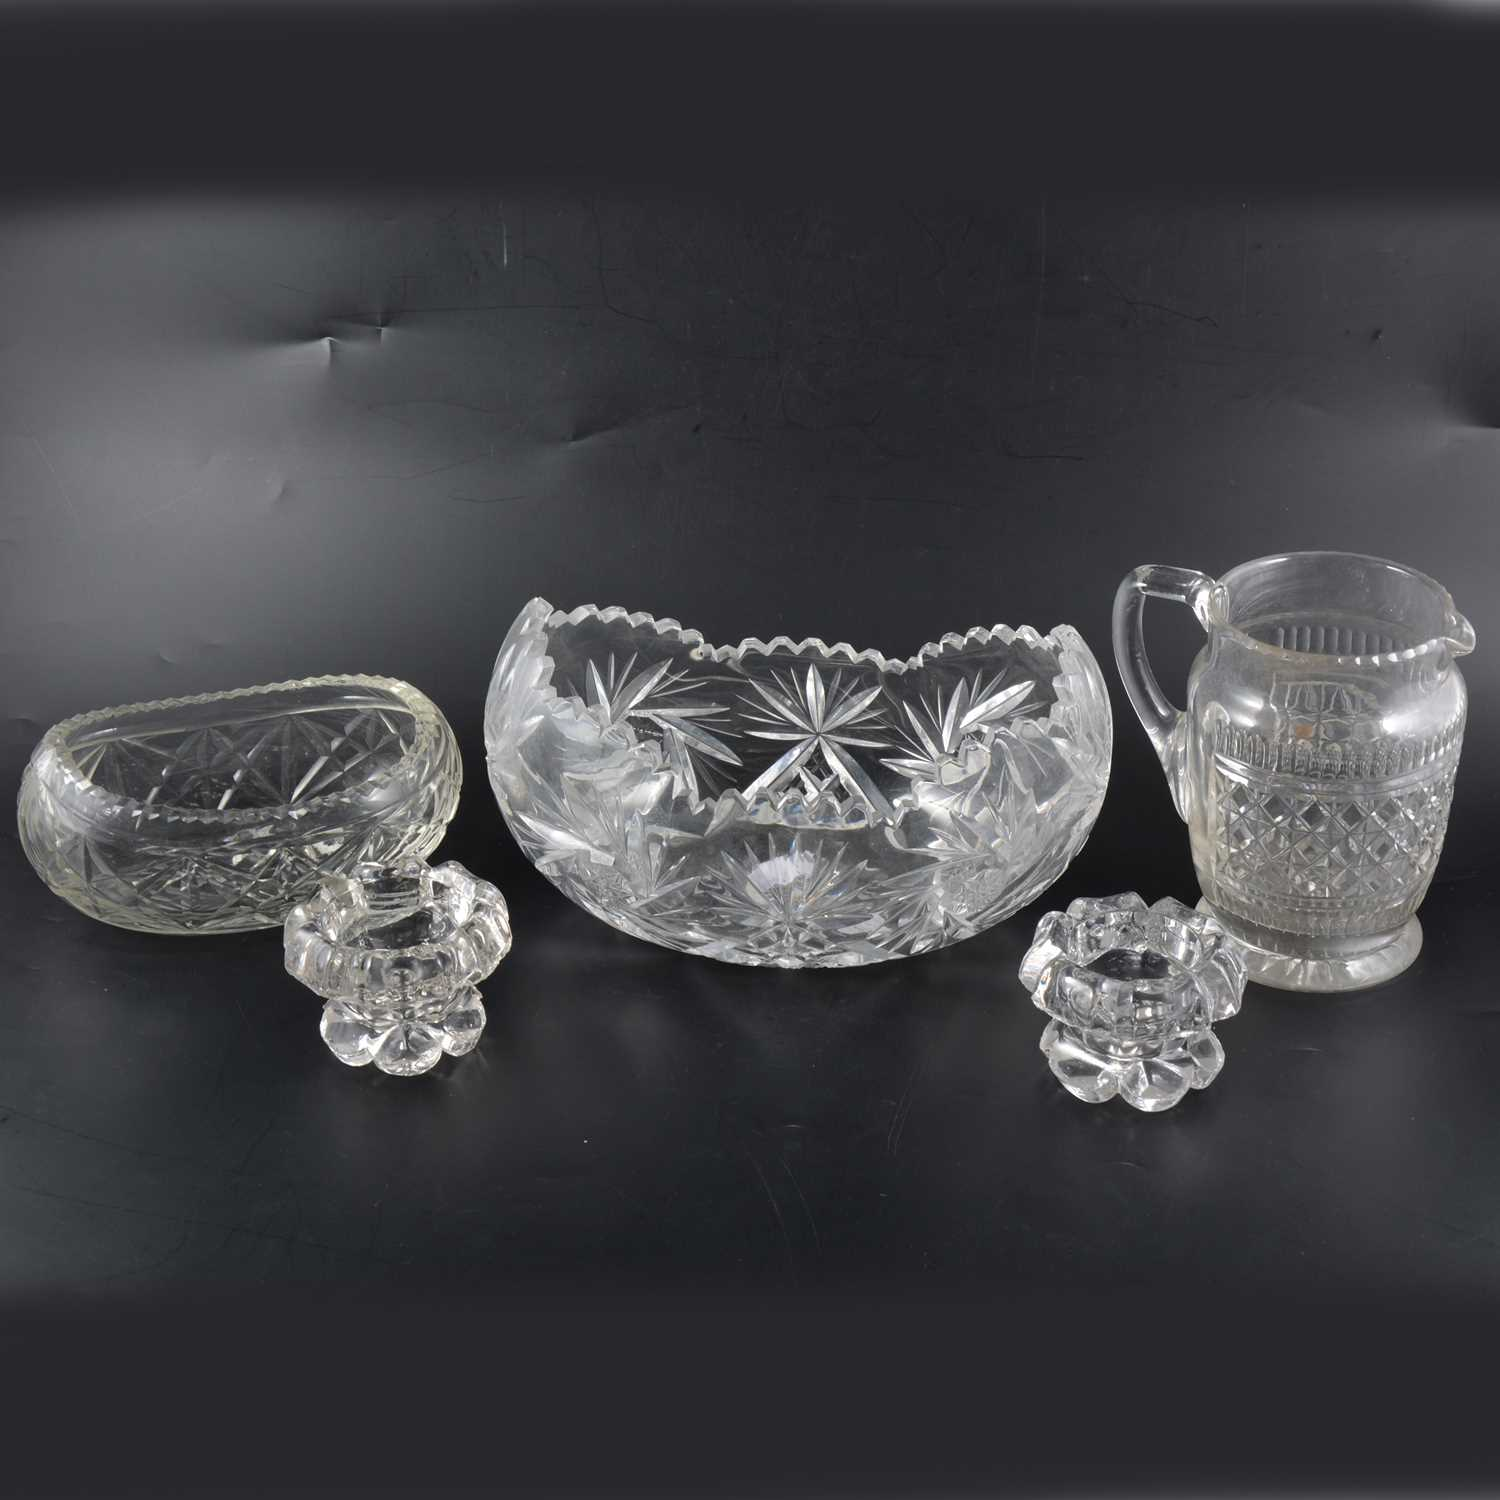 Lot 20-A collection of cut glass, including fruit bowls and a hors d'oeuvres set